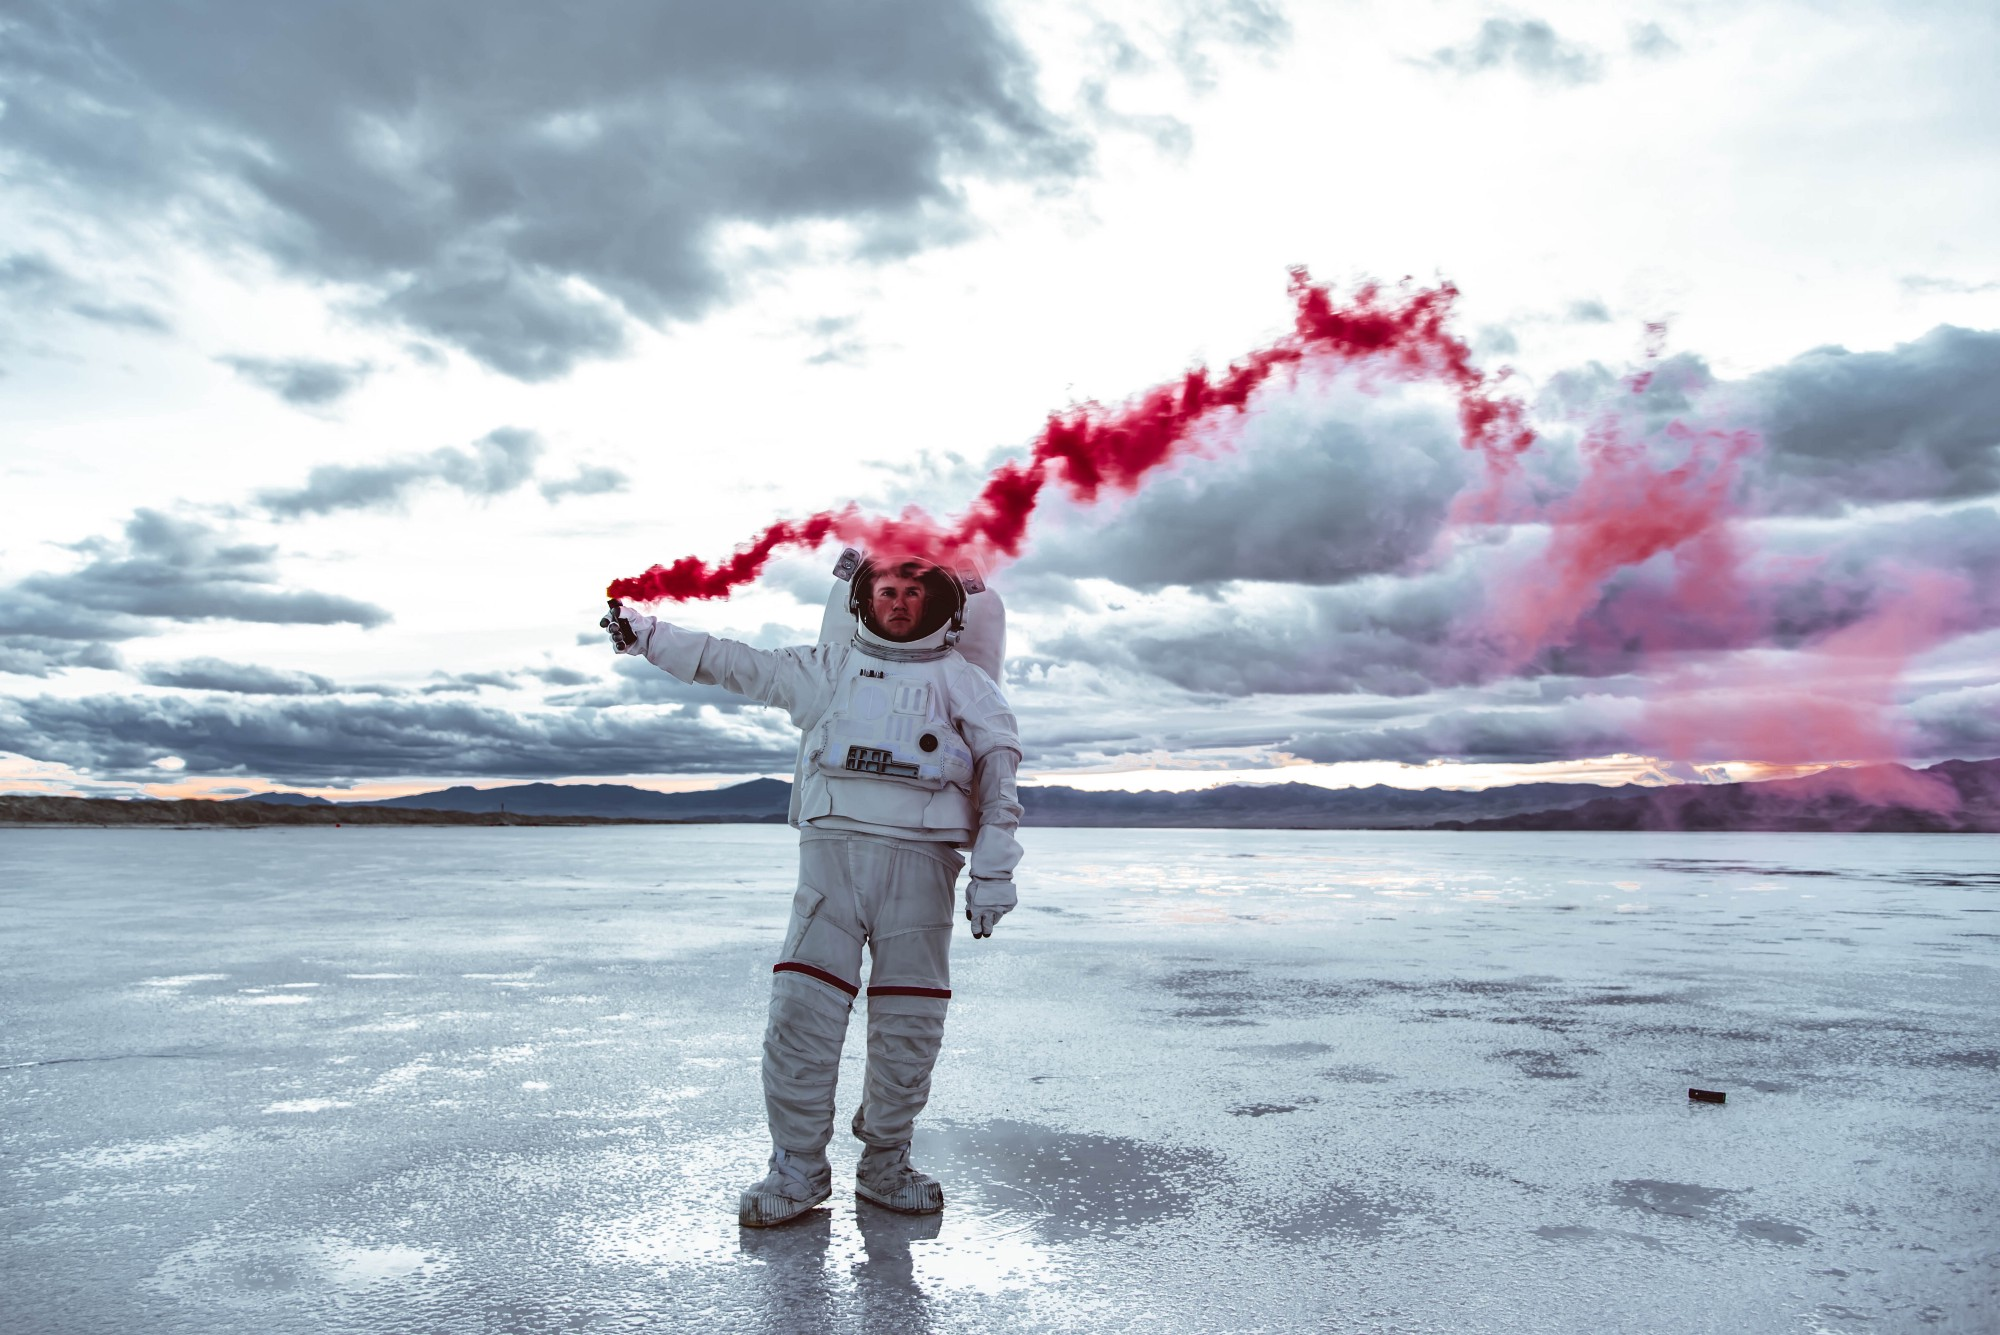 astronaut in a white spacesuit, holding a red flare